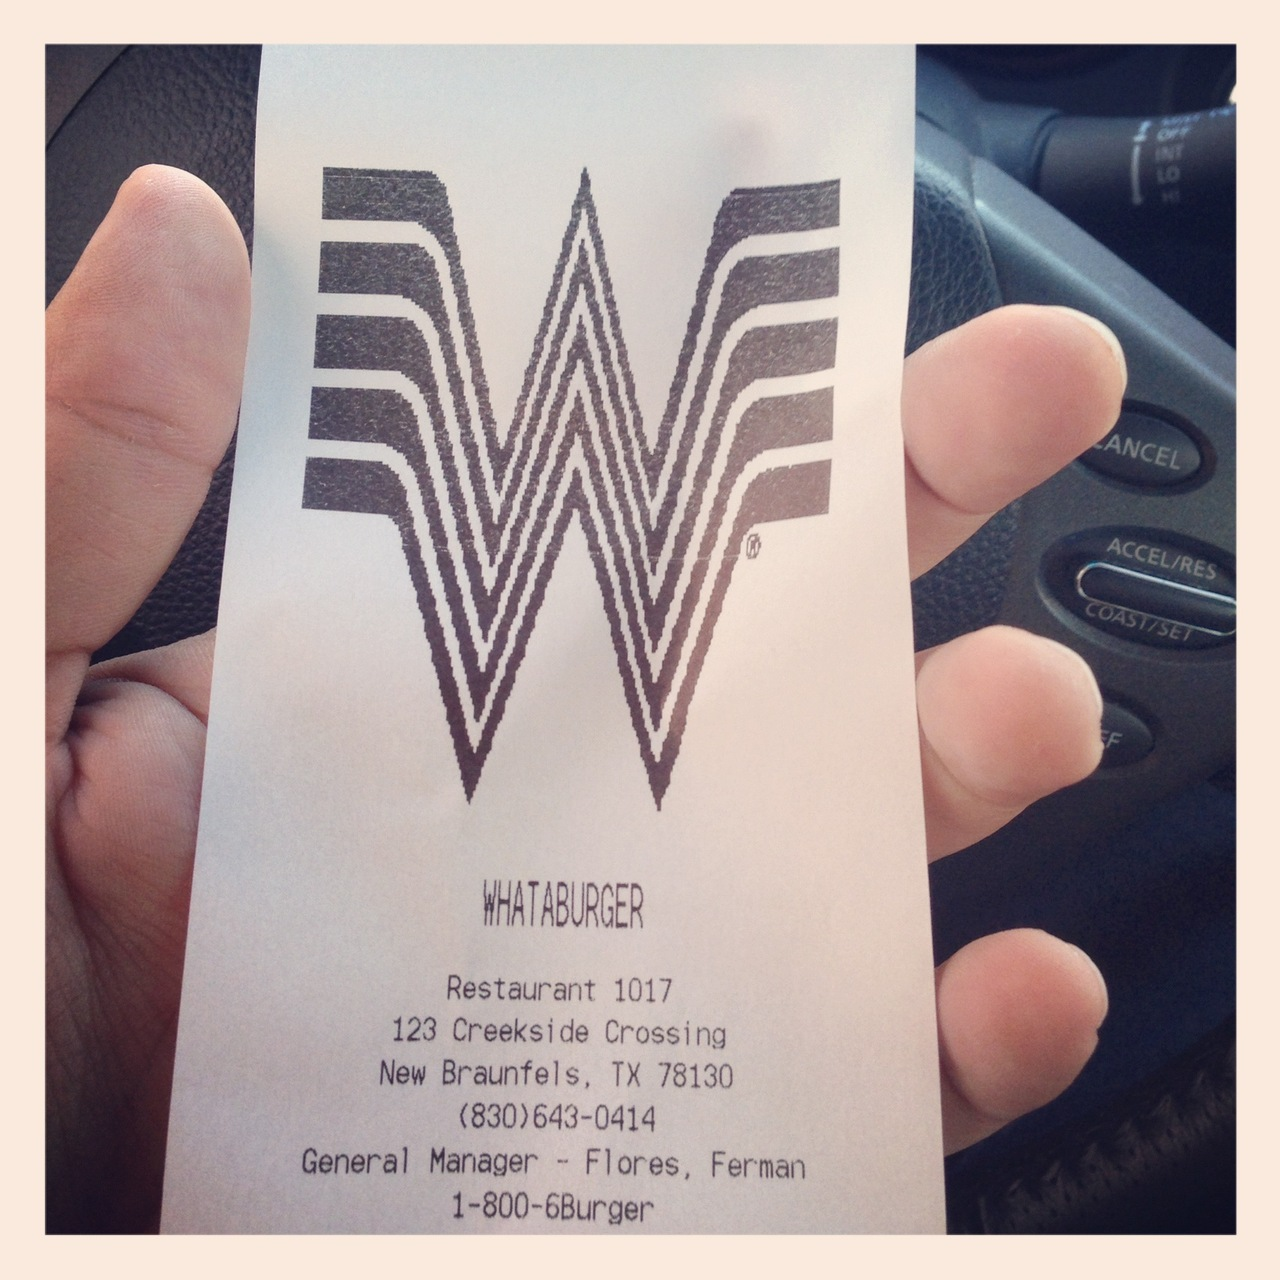 Stopped at a local Whataburger for lunch today and the thermal printer decided to drop the oversized logo on me.